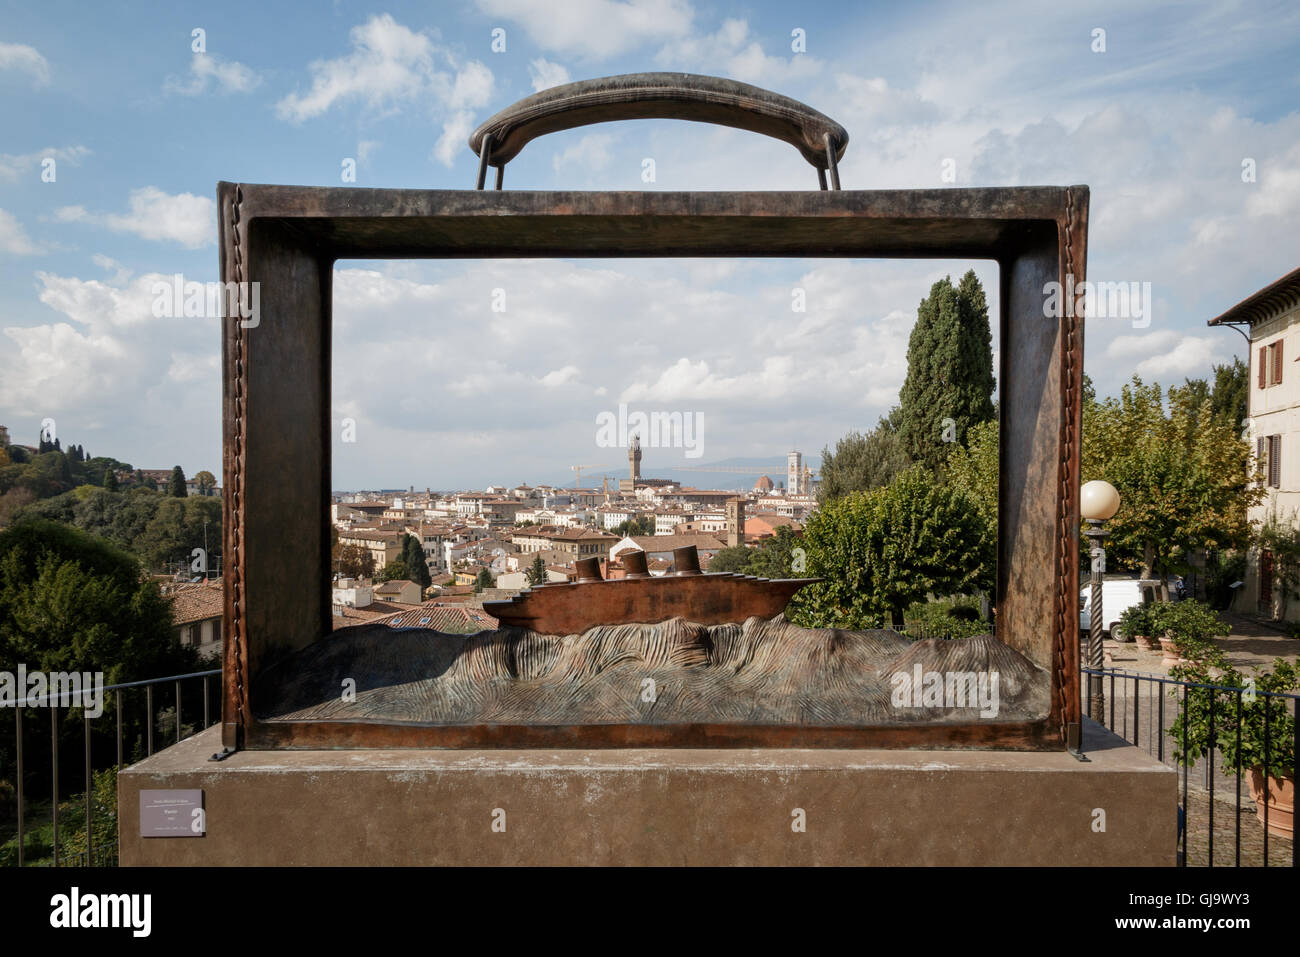 Art work by Jean-Michel Folon in Florence, Italy - Stock Image